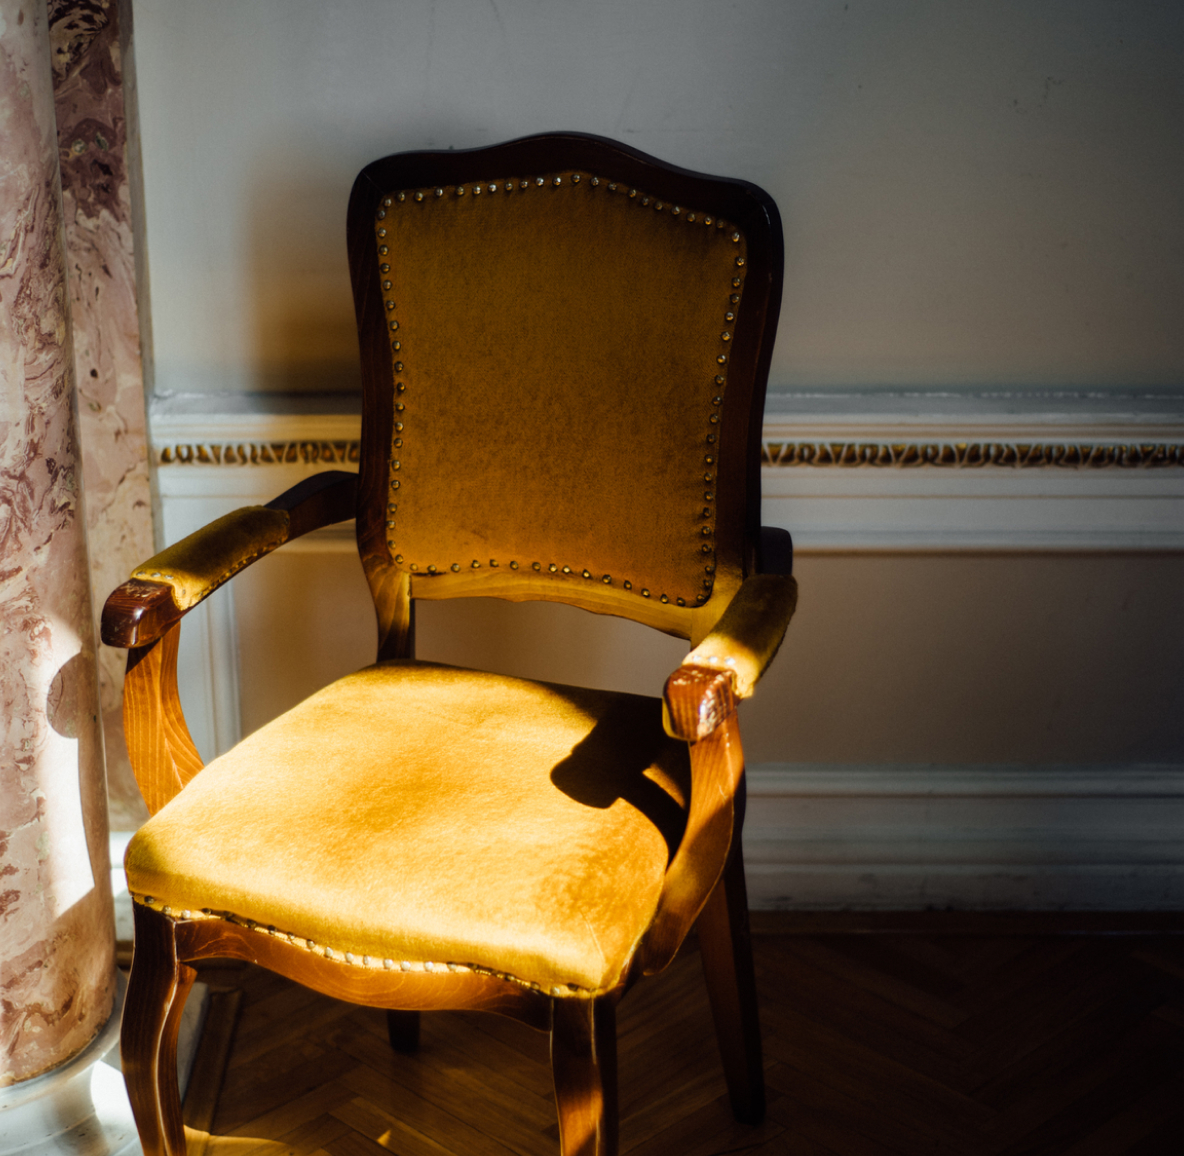 Sunlight cast on an antique armchair